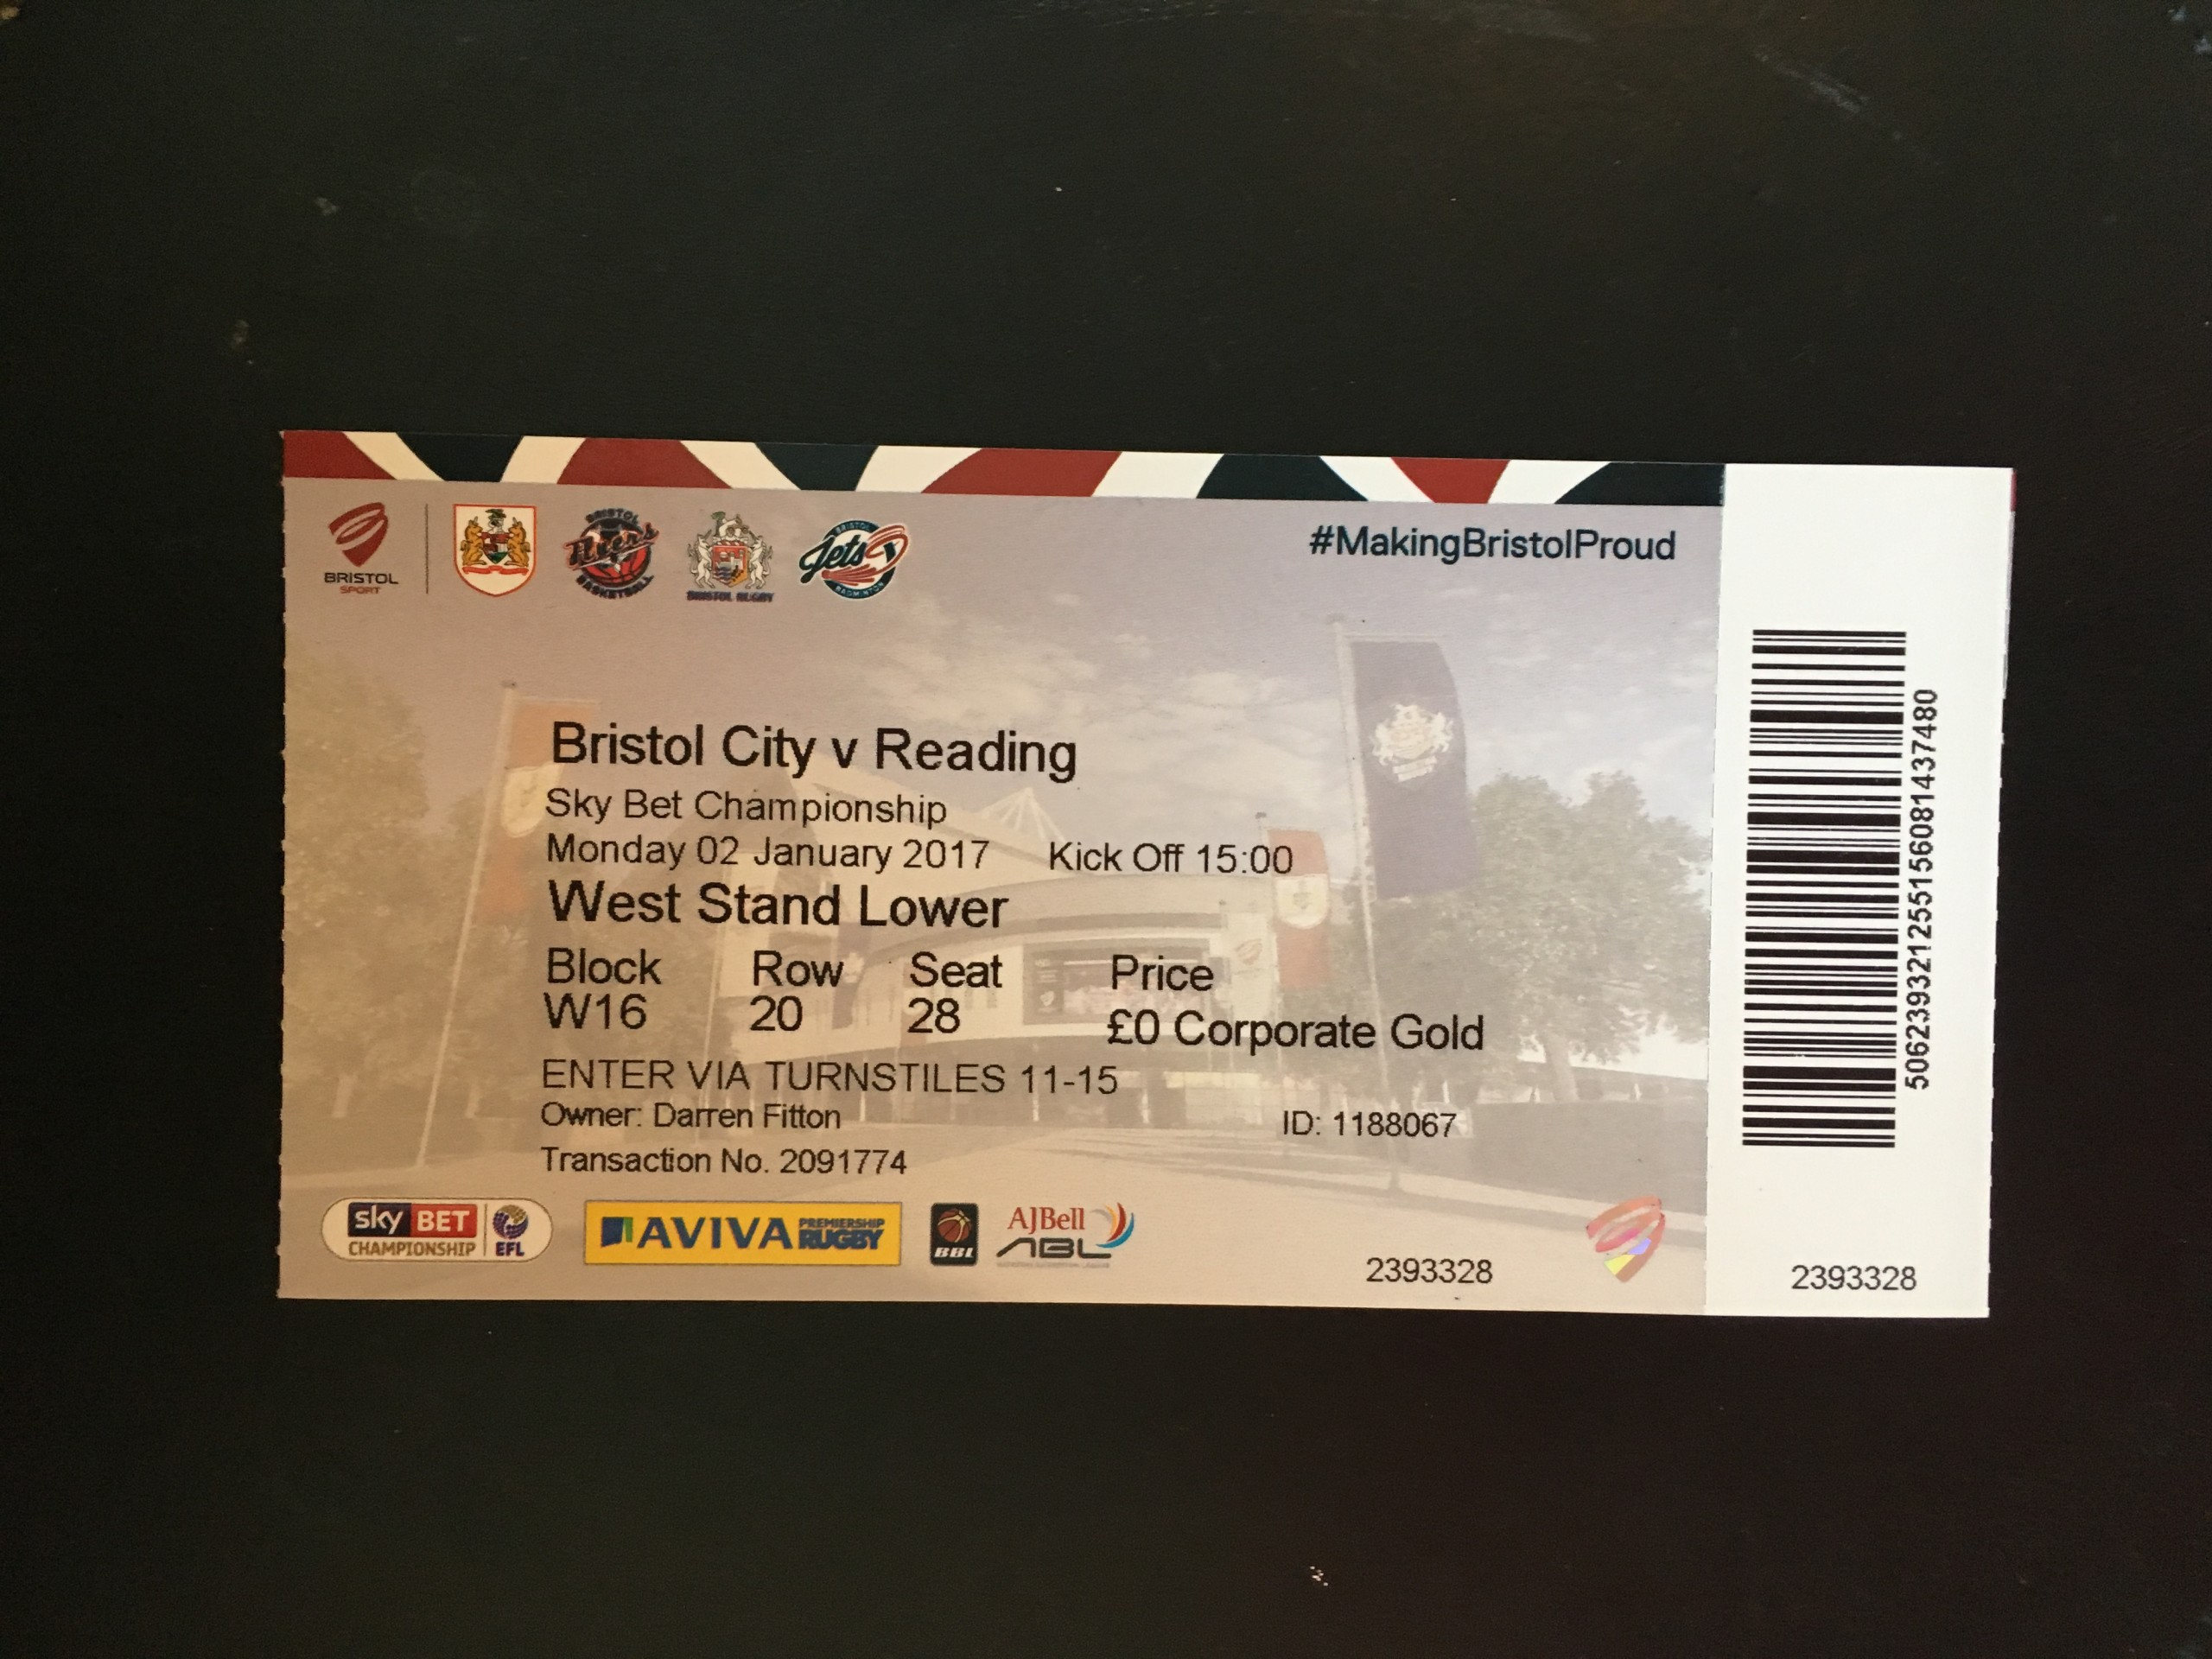 Bristol City v Reading 02-01-2017 Ticket